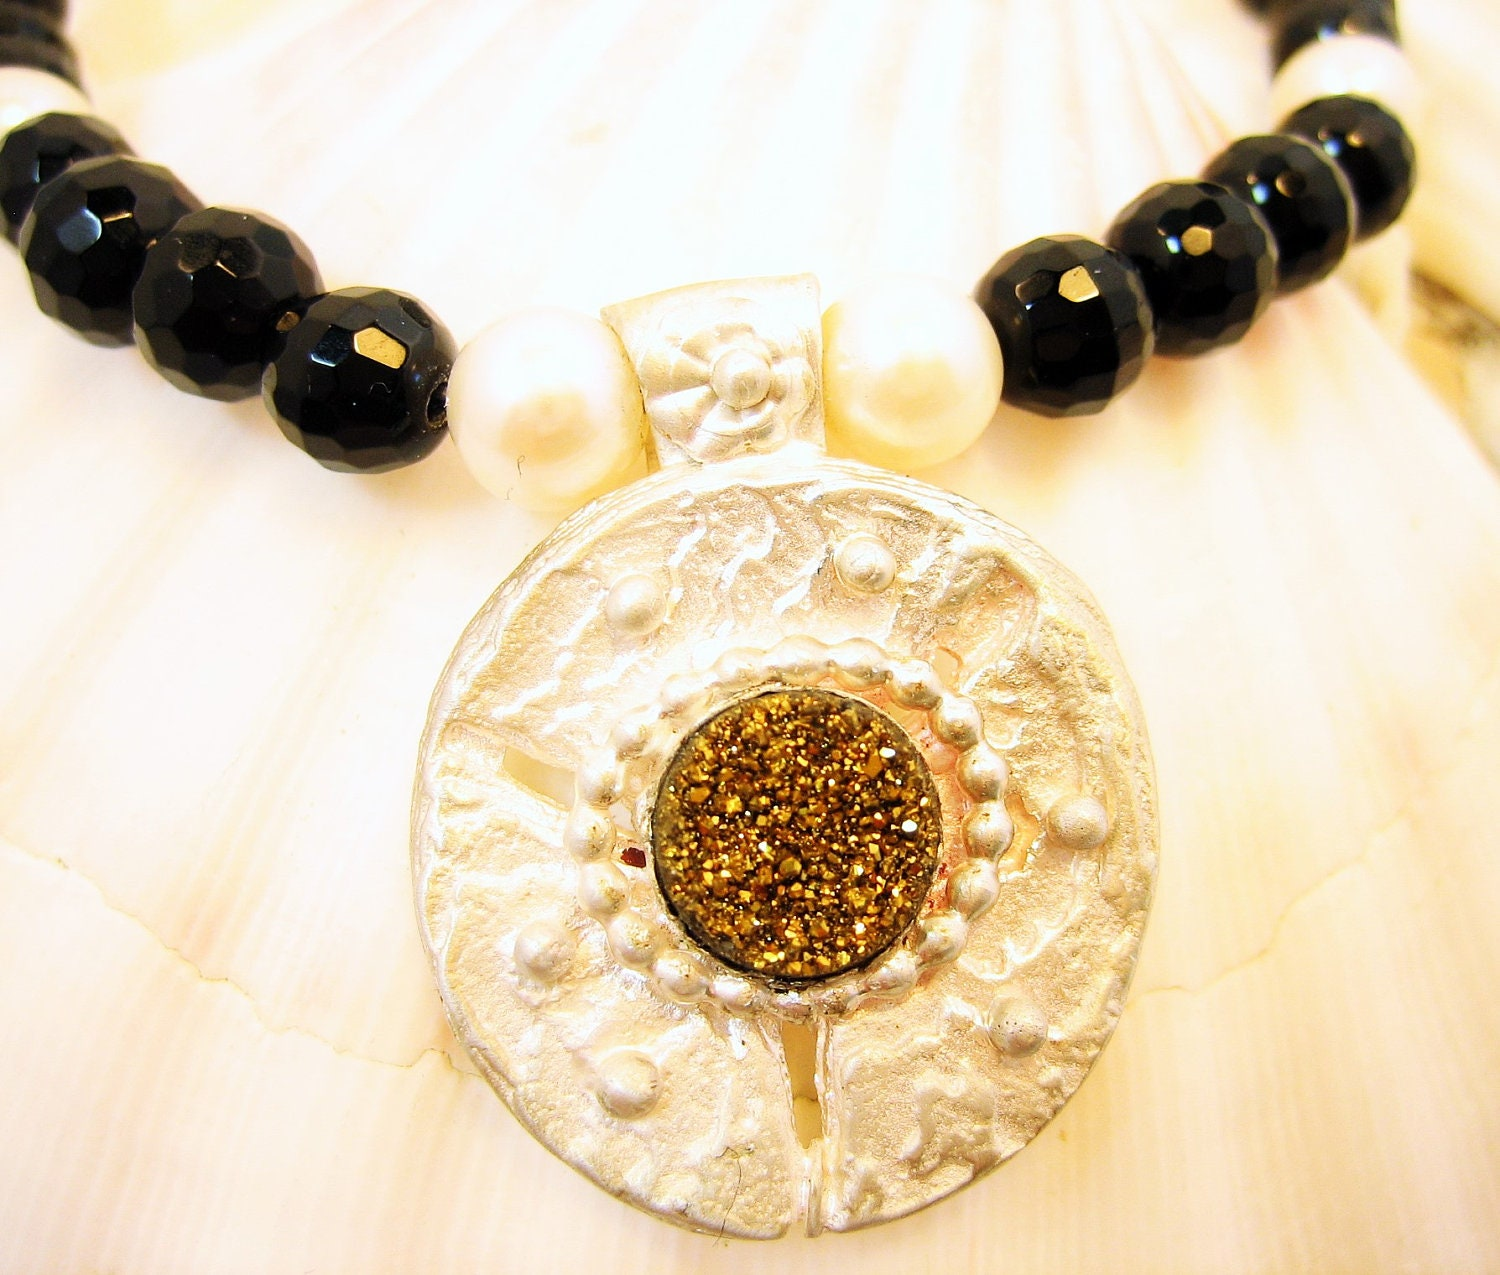 Golden druzy quartz on statement necklace, unique sea coin silver pendant, pearls and onyx, sea dollar silver necklace, black and pearls